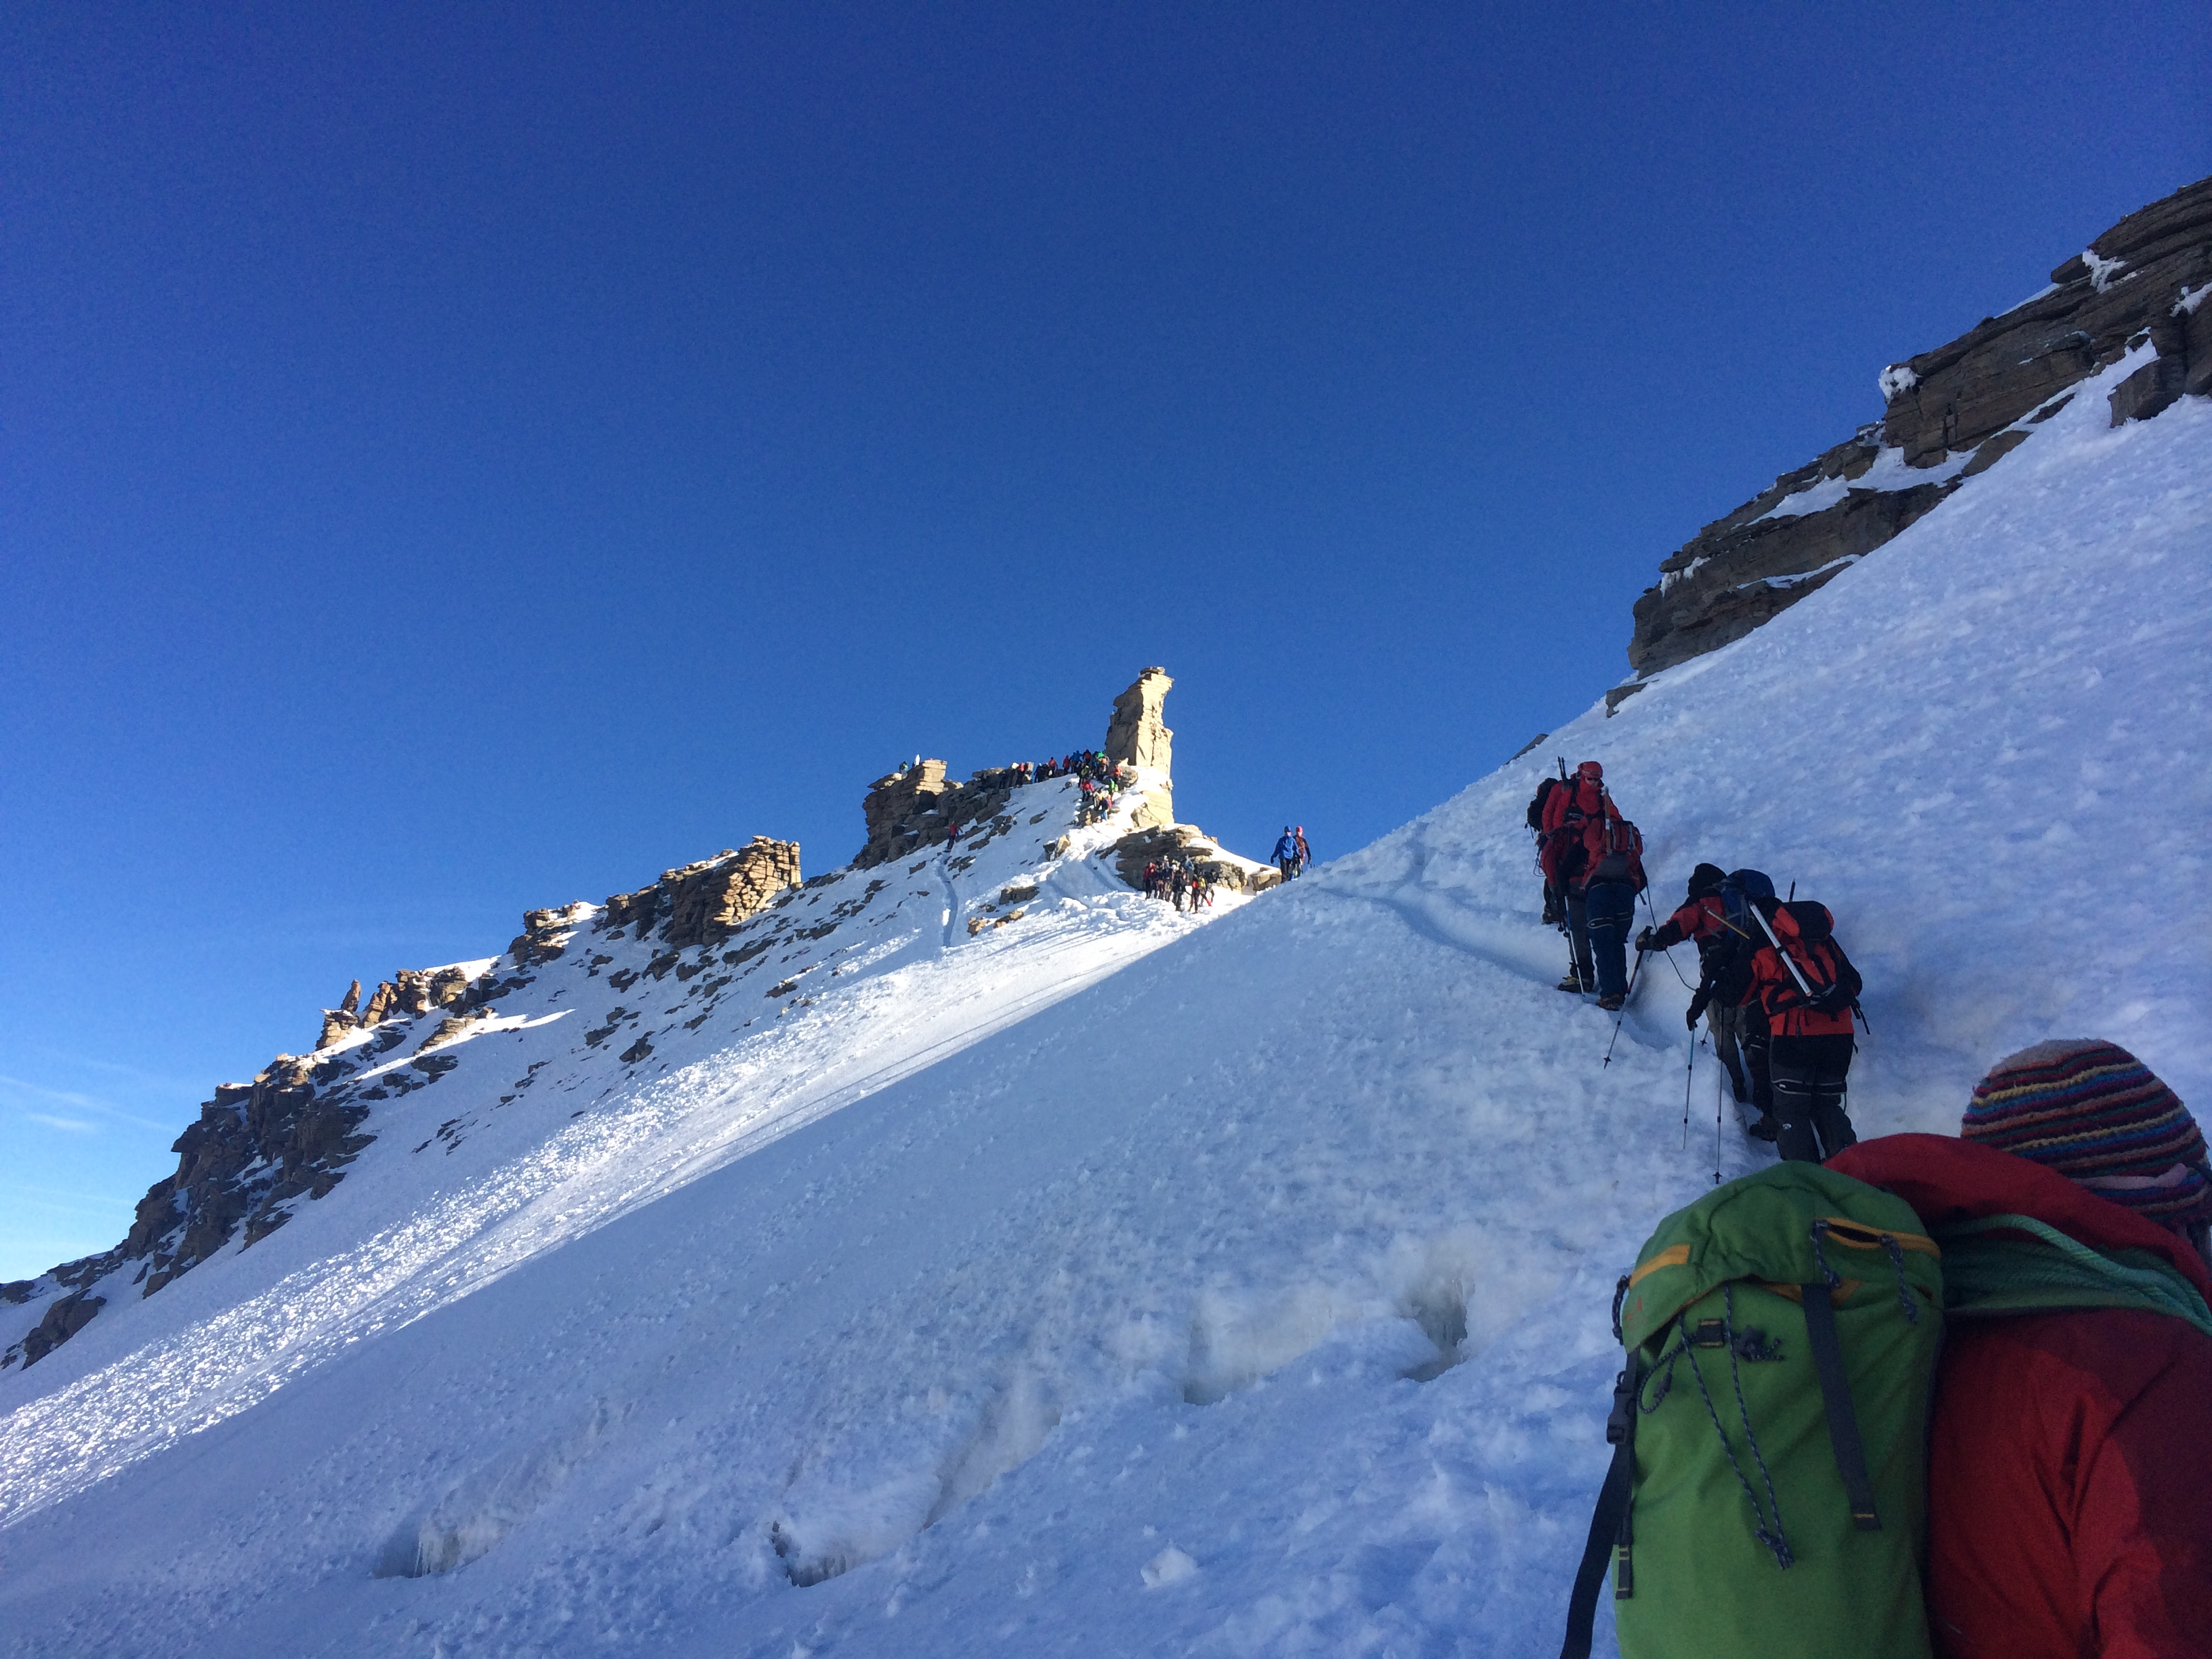 Approaching the summit ridge and the bottleneck at the top of Gran Paradiso